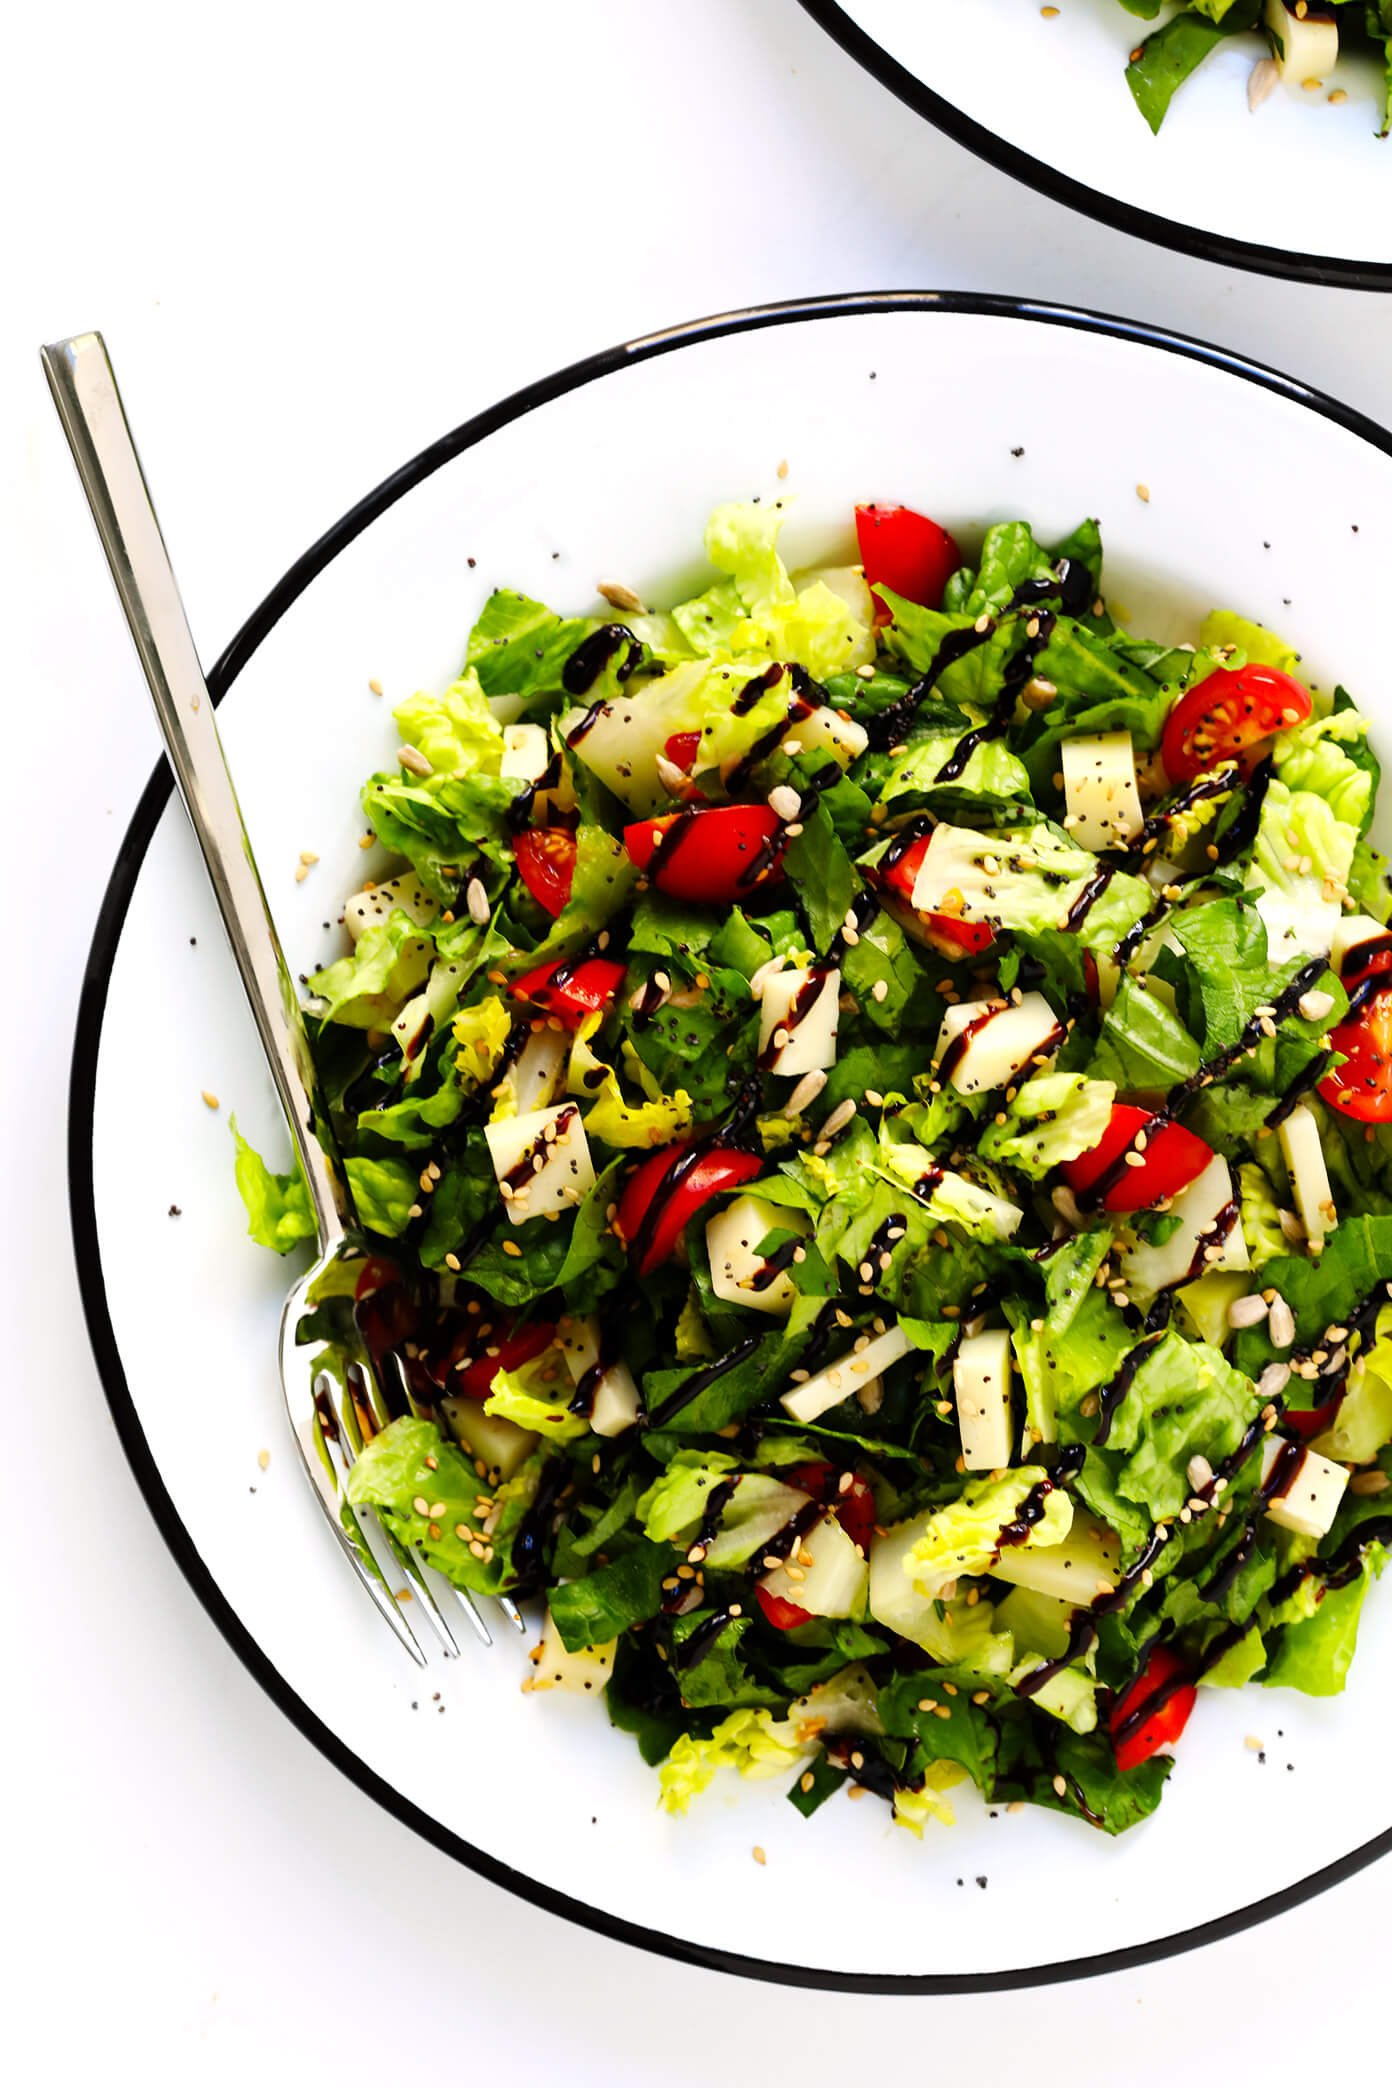 Unforgettable Italian Chopped Salad with Balsamic Glaze